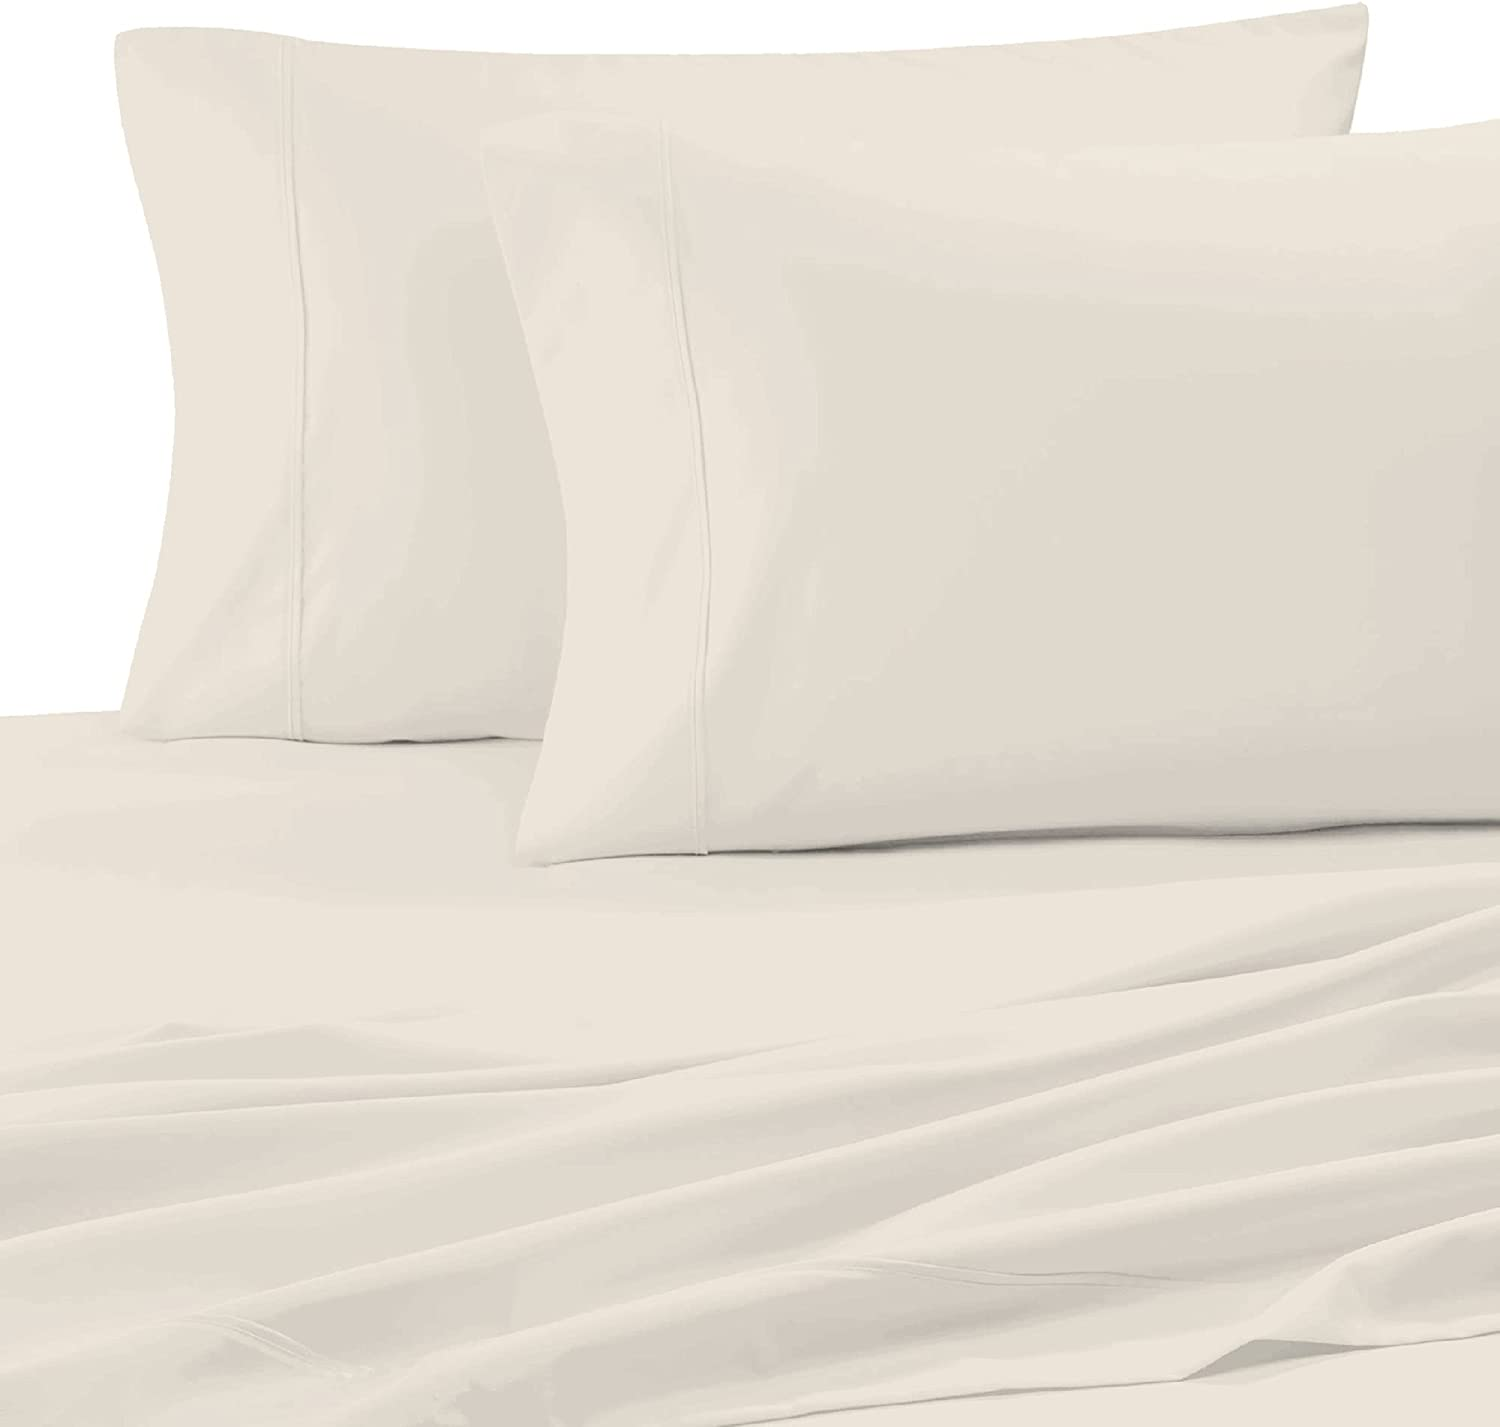 Purity Home 300 Thread Count 100% Organic Cotton Percale Weave Pillow Case Set, 2 Piece Set, Standard Size(20